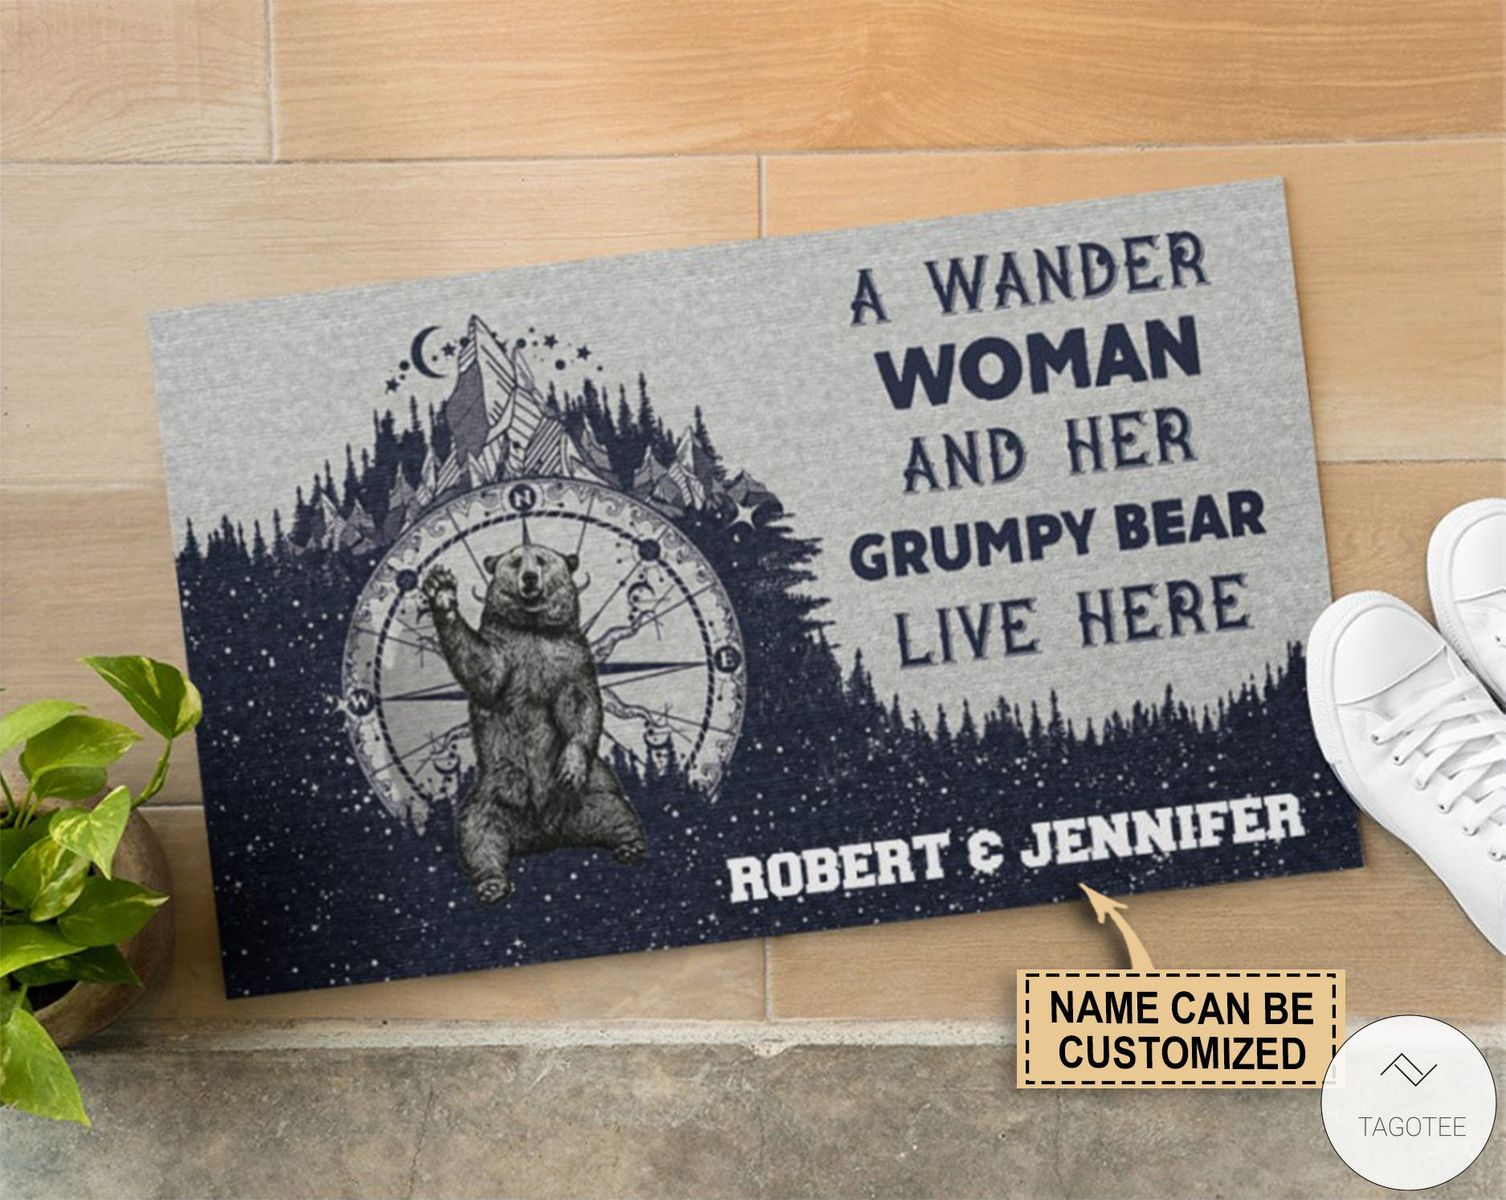 Personalized A wander woman and her grumpy bear live here doormat